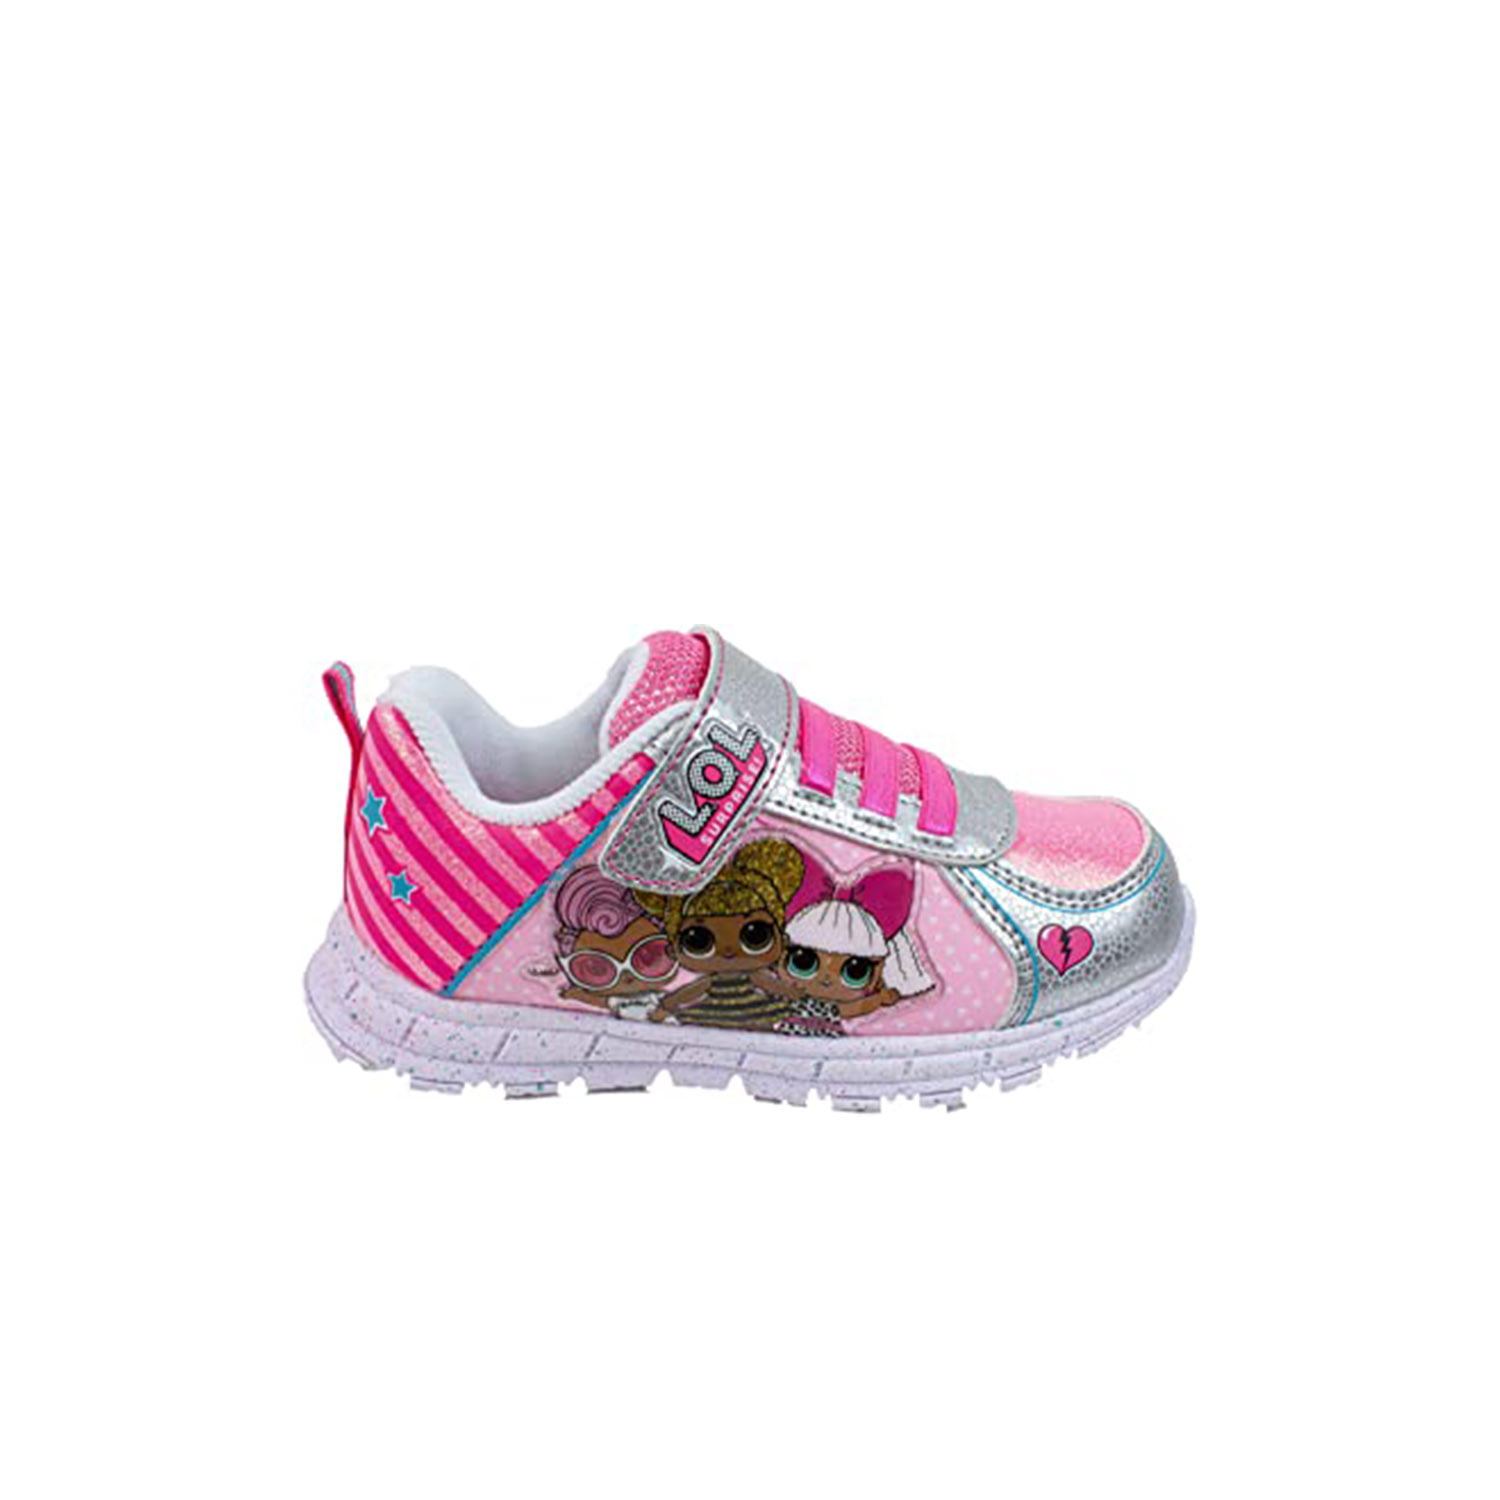 L.O.L Surprise! - L.O.L Surprise Girls Sneakers, Light Up Fashion and Athletic  Shoes with Strap, Queen Bee Deva MC Swag and Rocker - Walmart.com -  Walmart.com